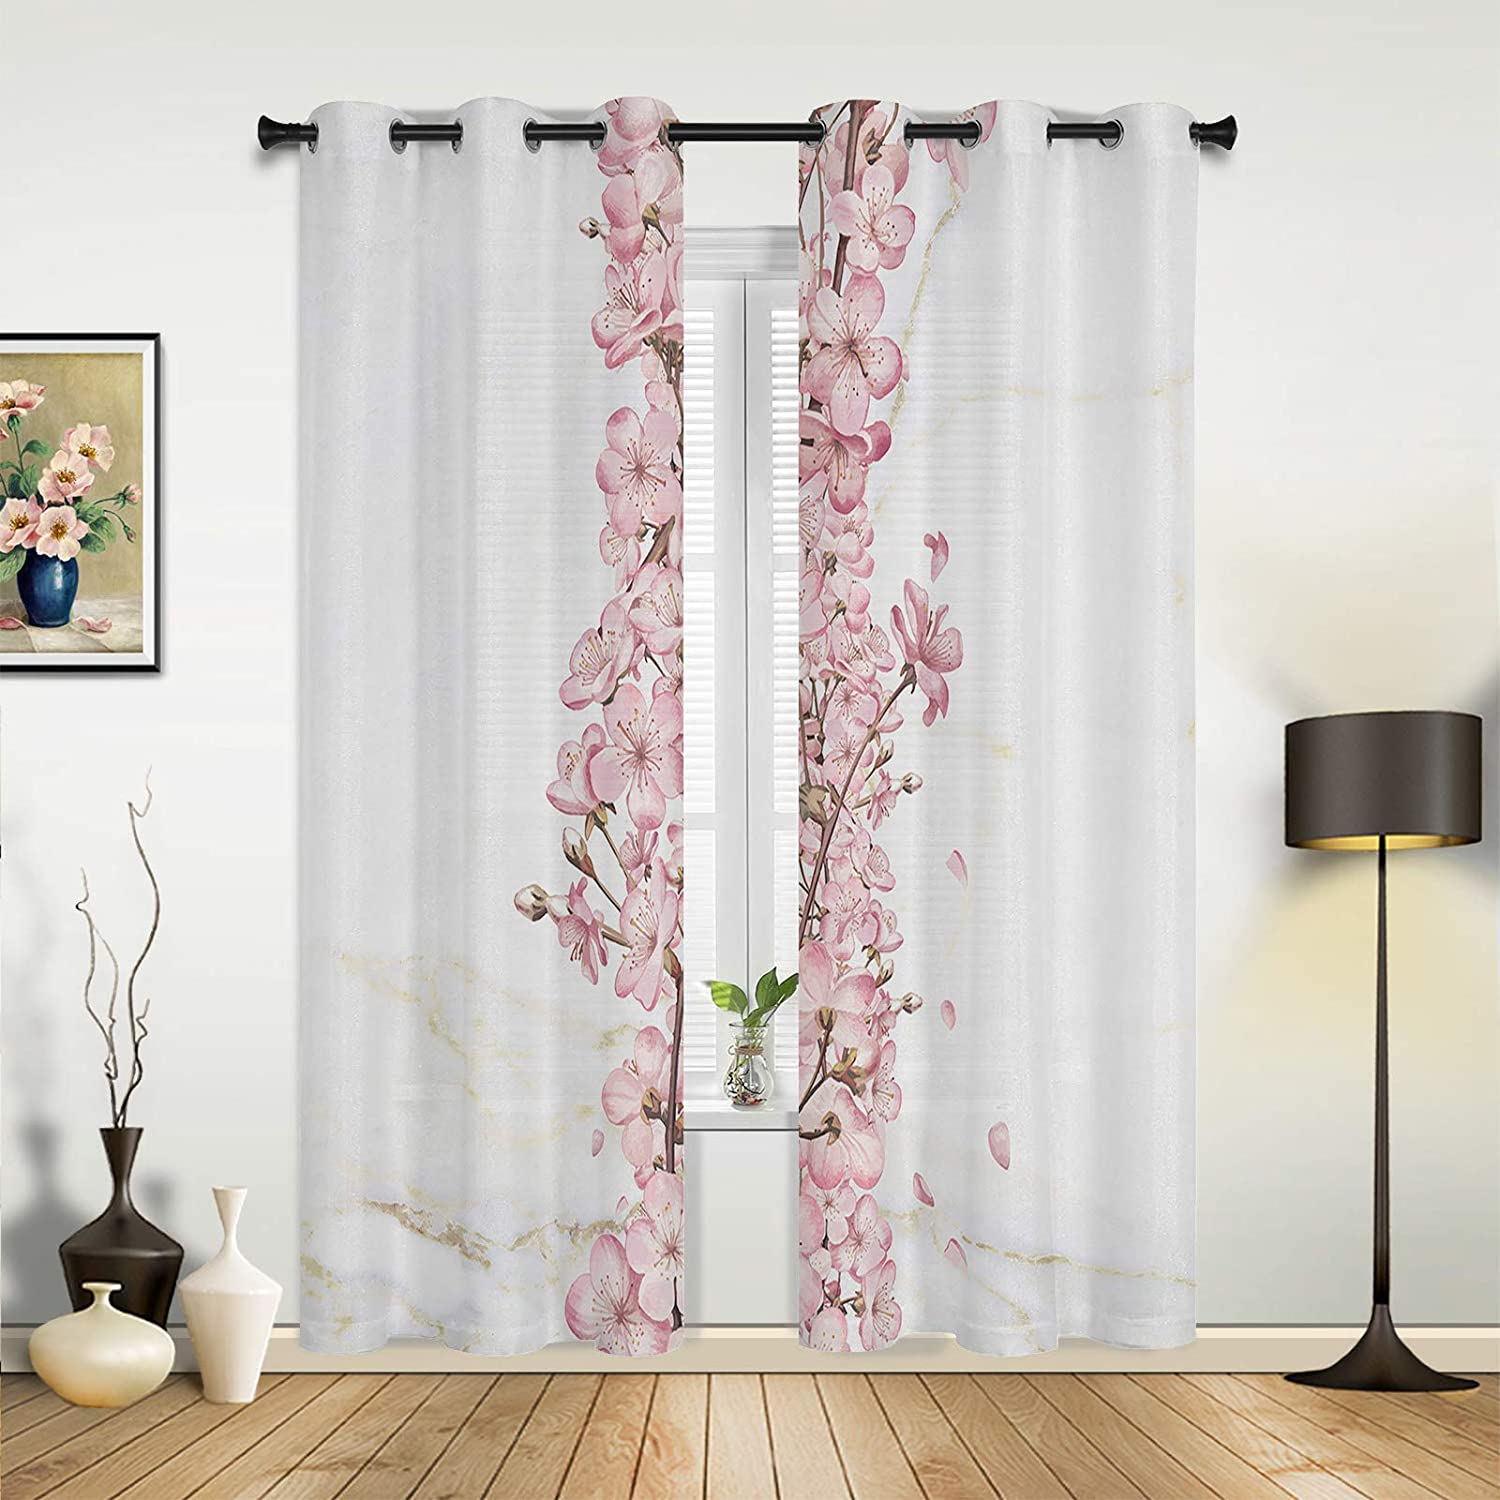 Beauty Decor Window Recommended Sheer Curtains Brand Cheap Sale Venue Bedroom for Room Living Pink